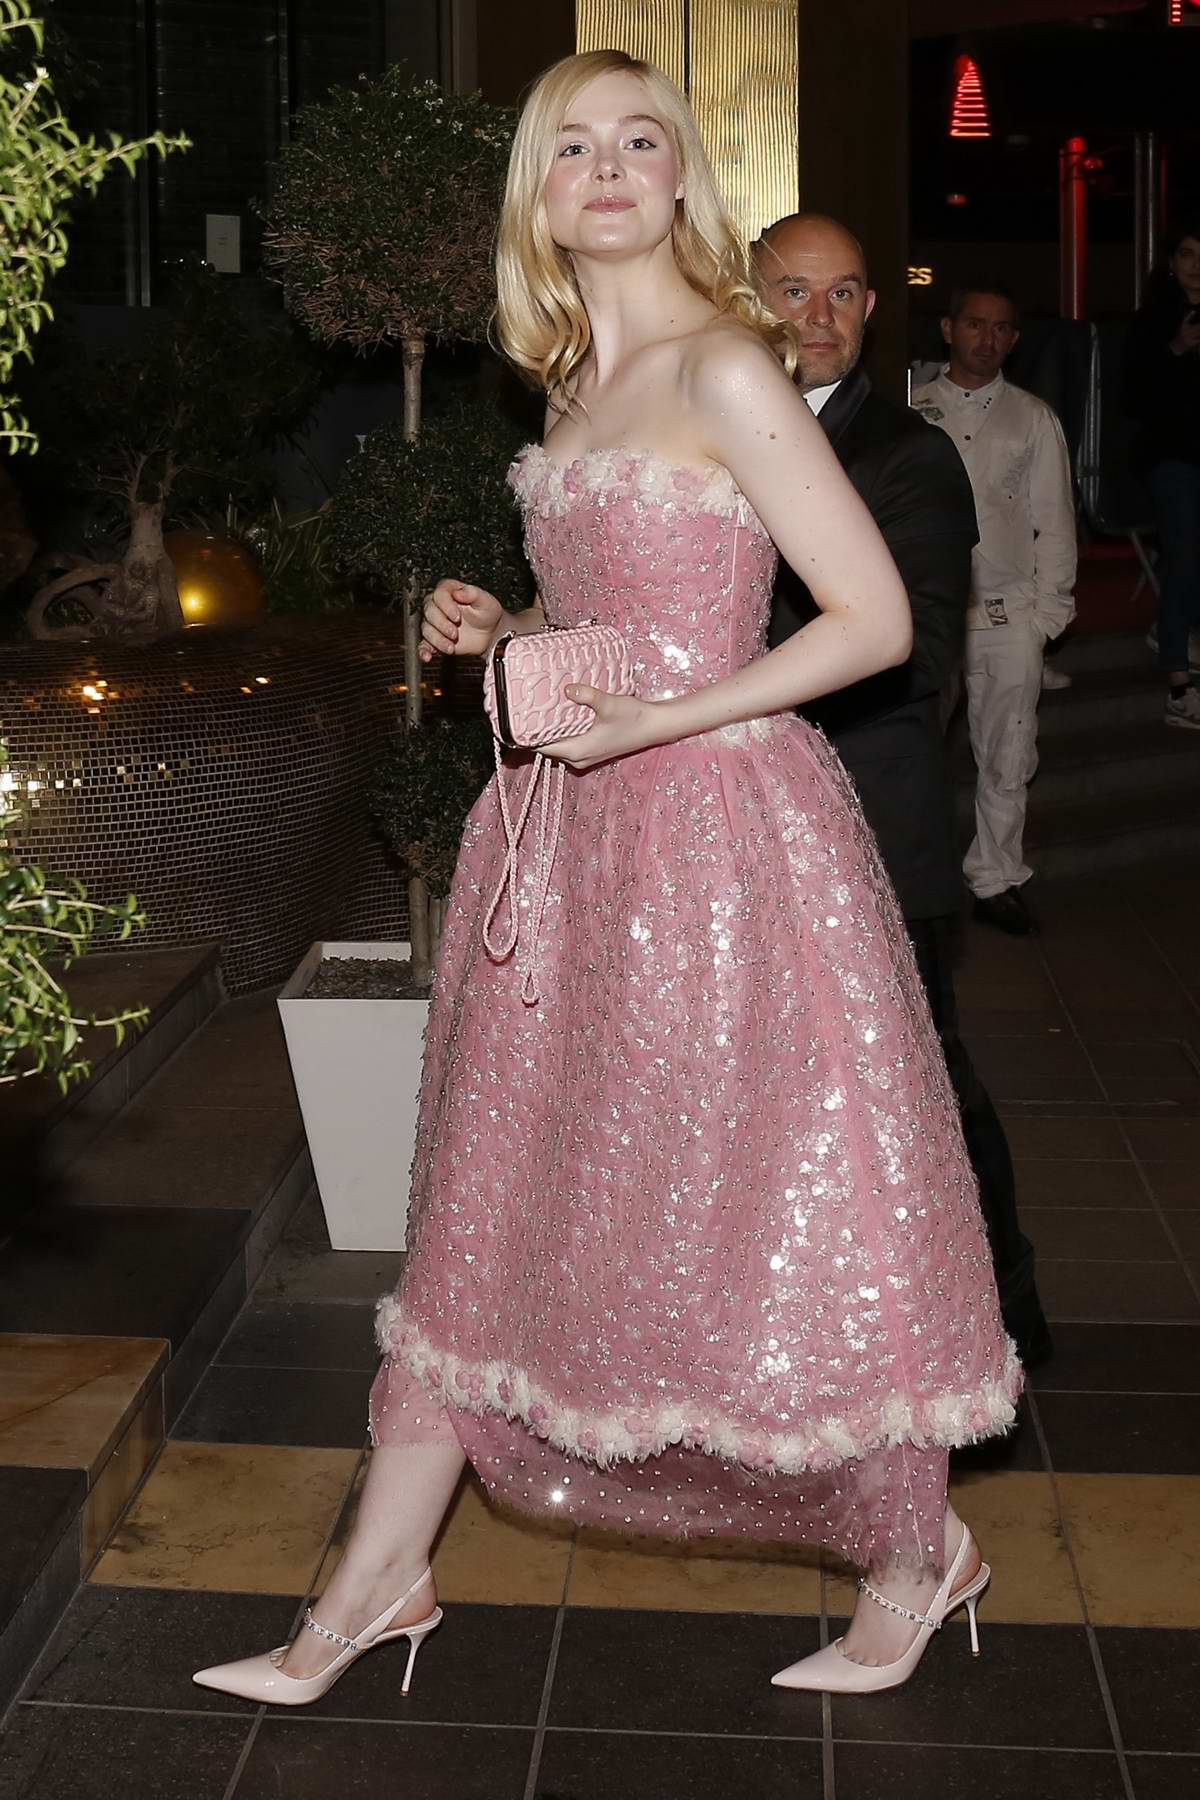 Elle Fanning attends the Chanel Party during the 72nd annual Cannes Film Festival in Cannes, France